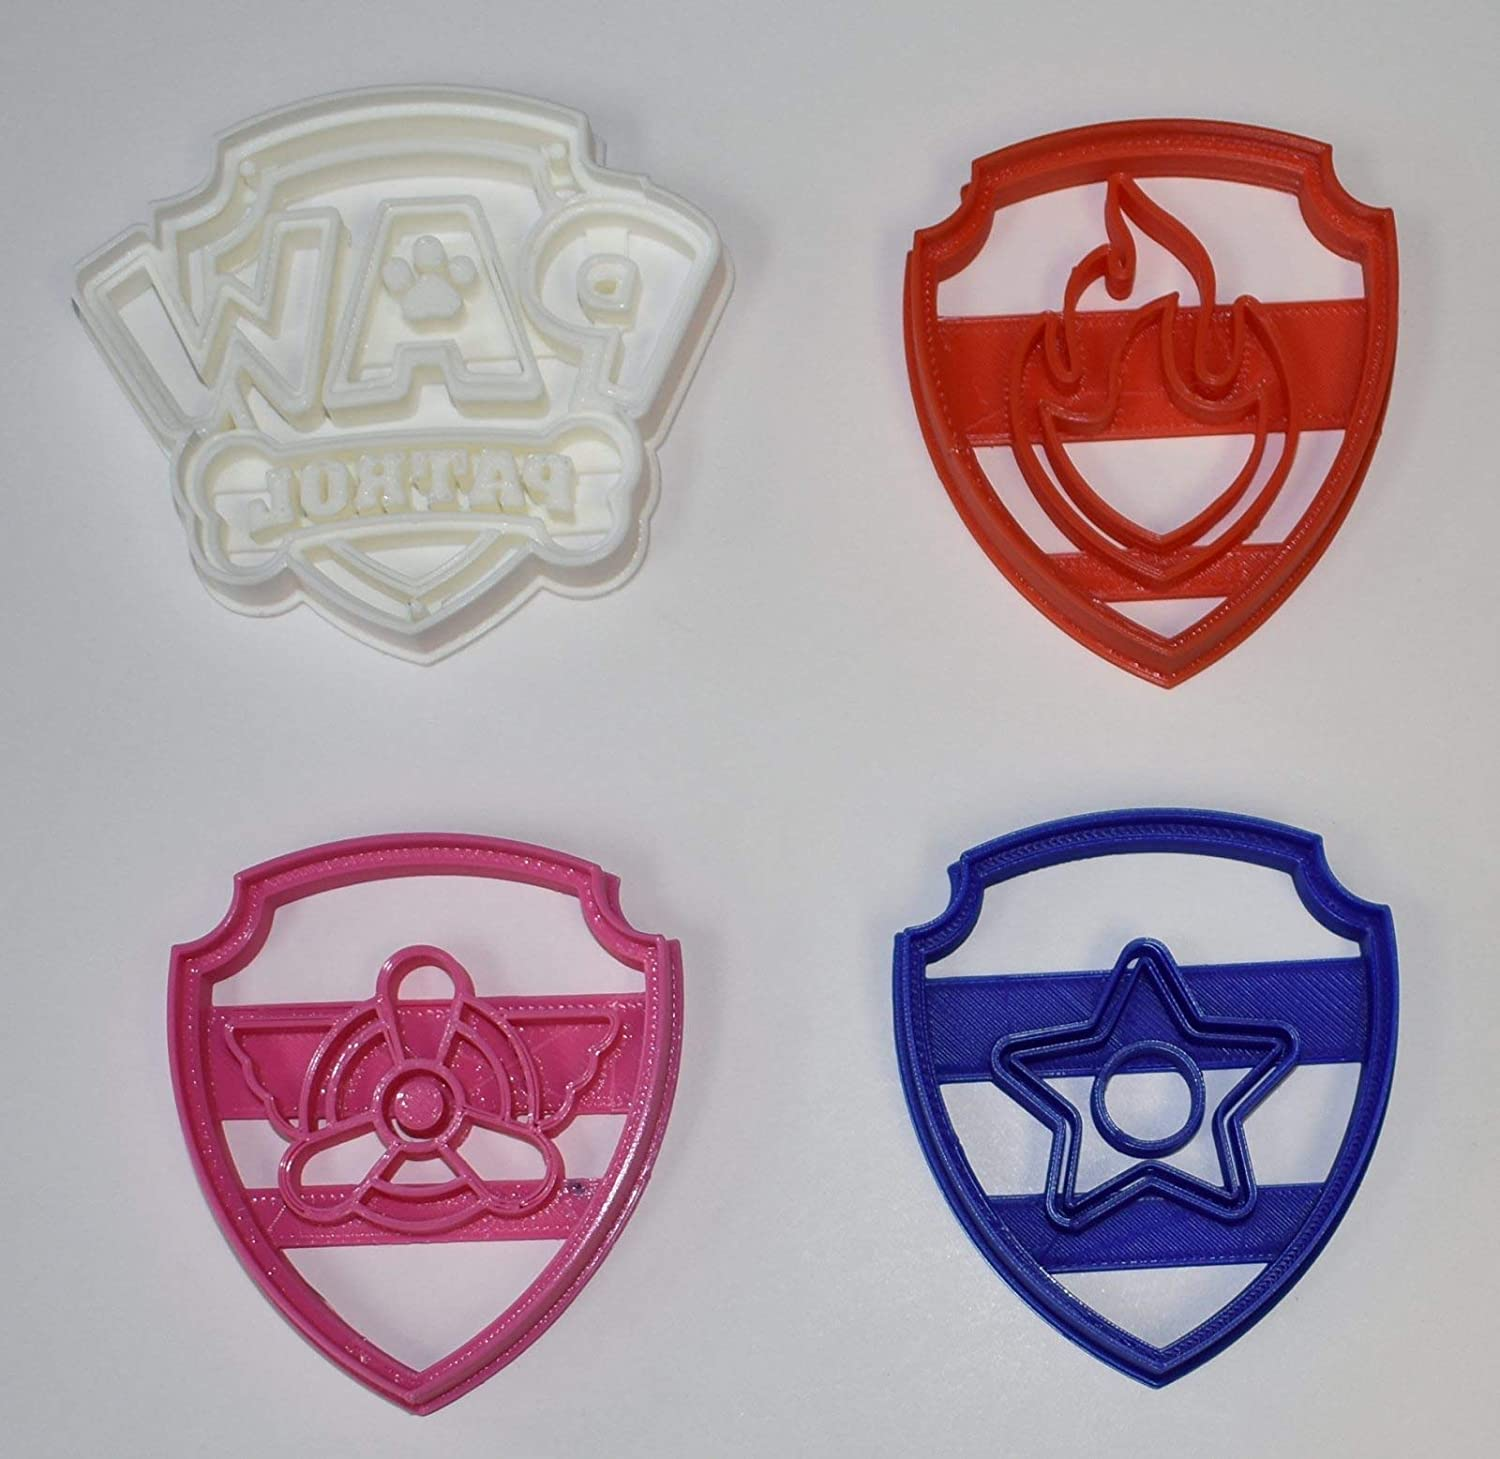 Amazon Com Paw Patrol Logo Badge Shield Tags Chase Marshall Skye Heroic Rescue Pups Dogs Kids Cartoon Set Of 4 Special Occasion Cookie Cutters Baking Tool Made In Usa Pr1047 Kitchen Dining